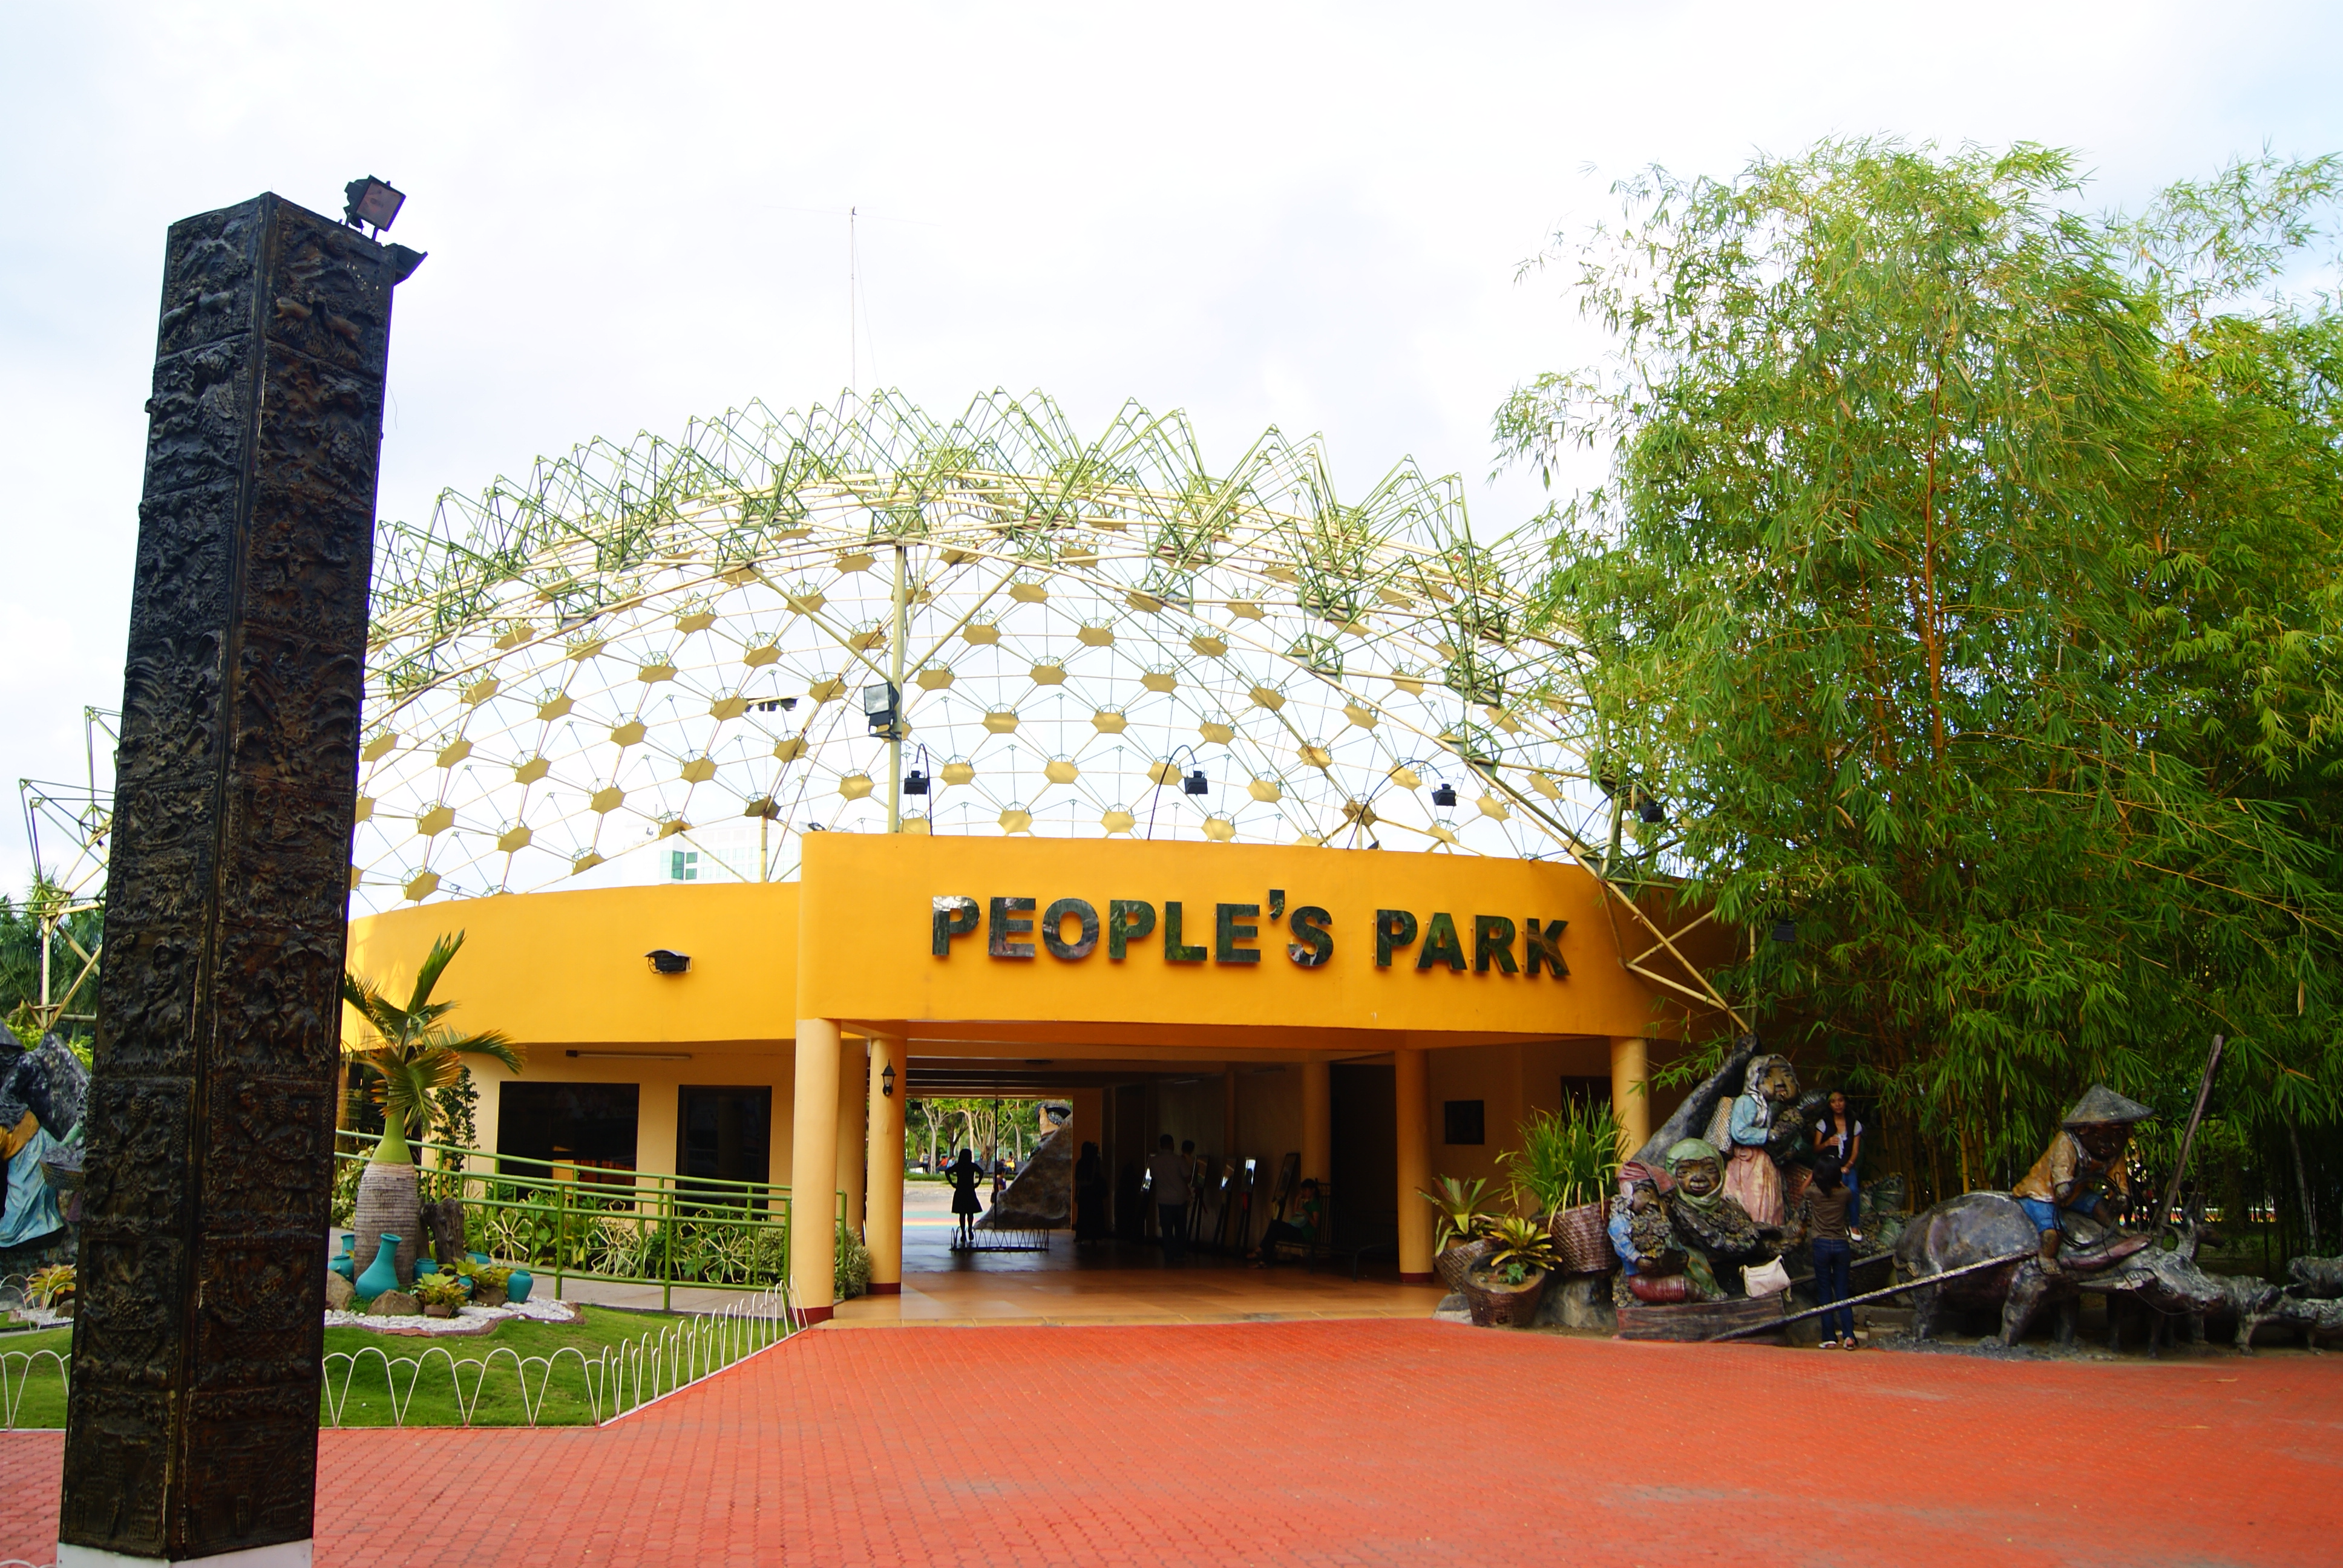 https://tourism.davaocity.gov.ph/wp-content/uploads/2018/10/Peoples_Park_Davao_City_Philippines_1_May_2010.jpg